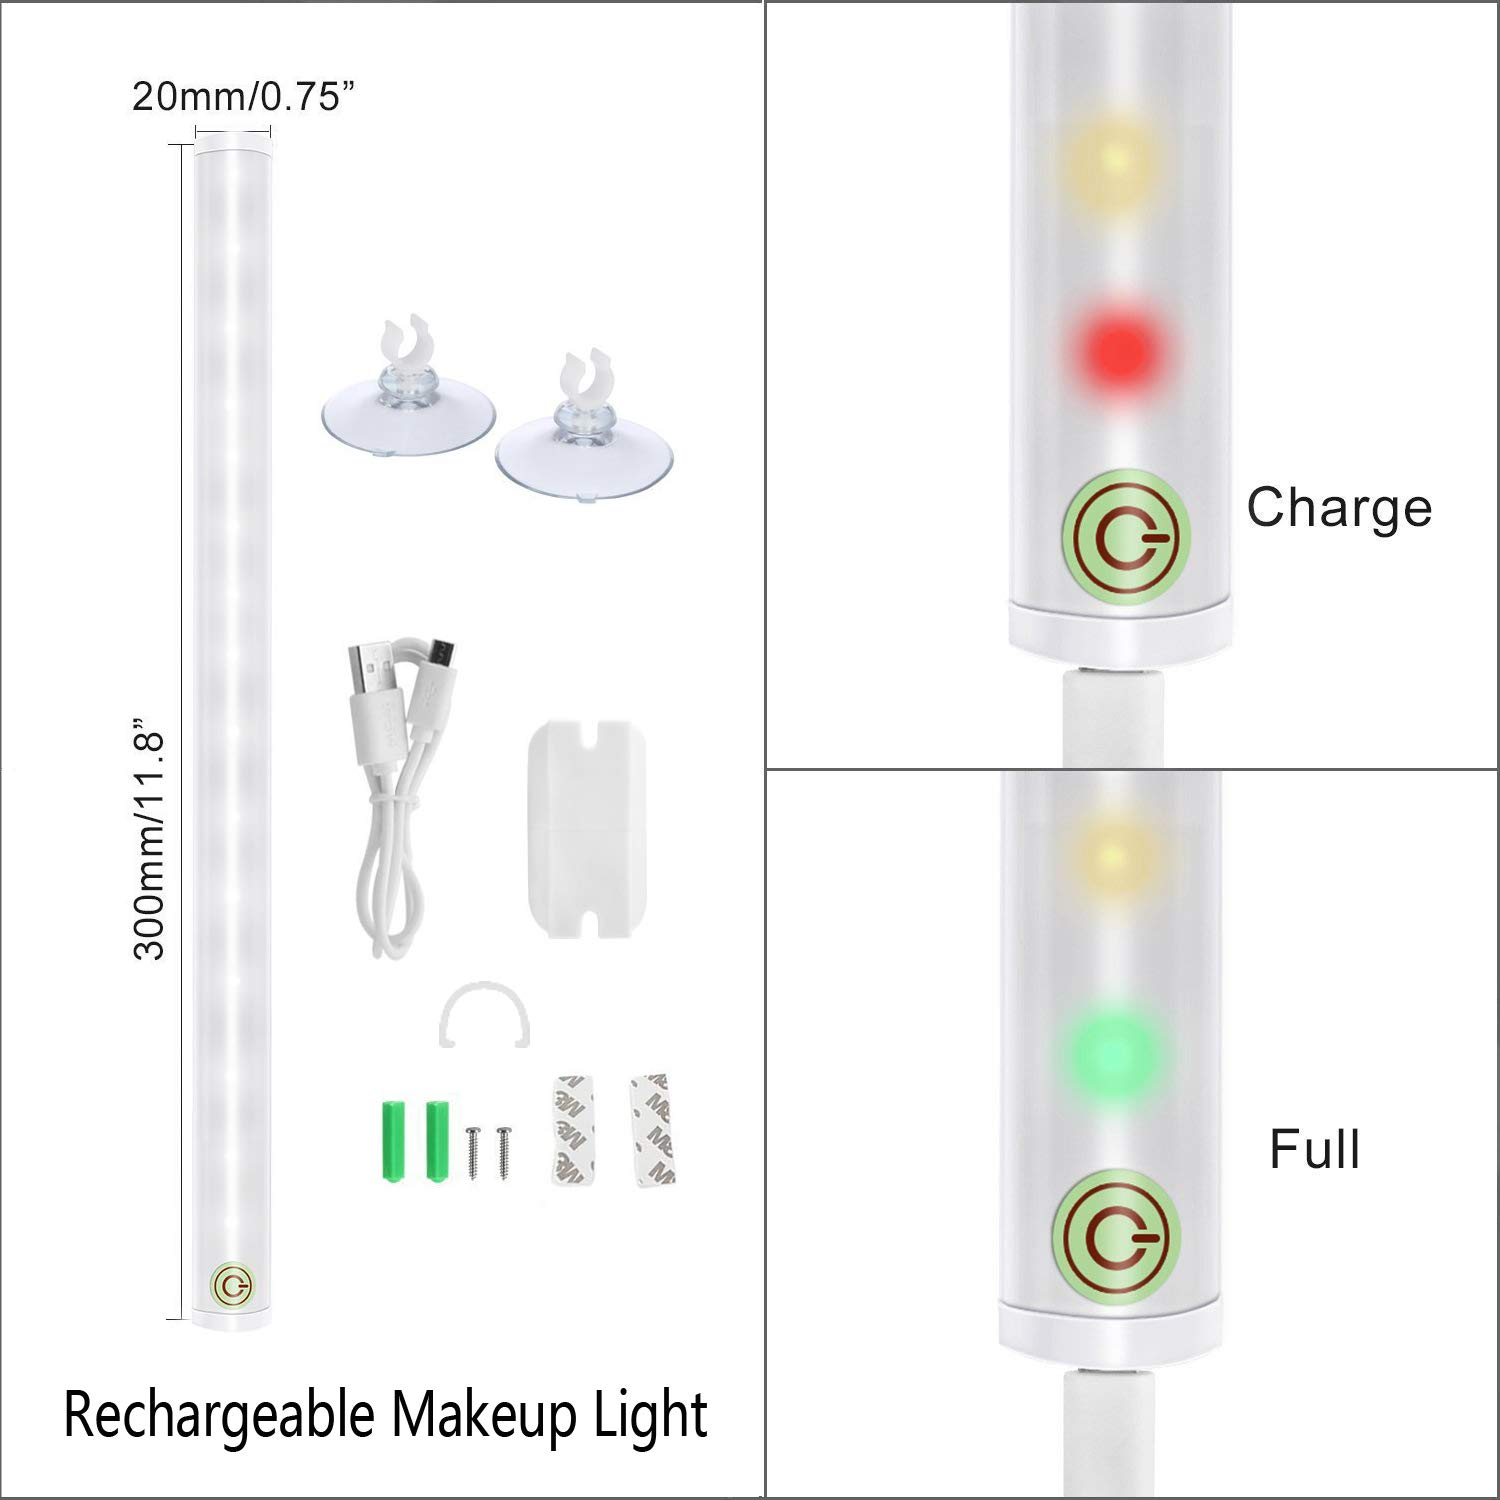 Portable Vanity Lights 4 Brightness Level Touch Control Rechargeable Simulated Daylight Wireless LED Mirror Lights Makeup Lights Includes Makeup Brushes shenzhenshiwenyuedianzishangwuyouxiangongsi